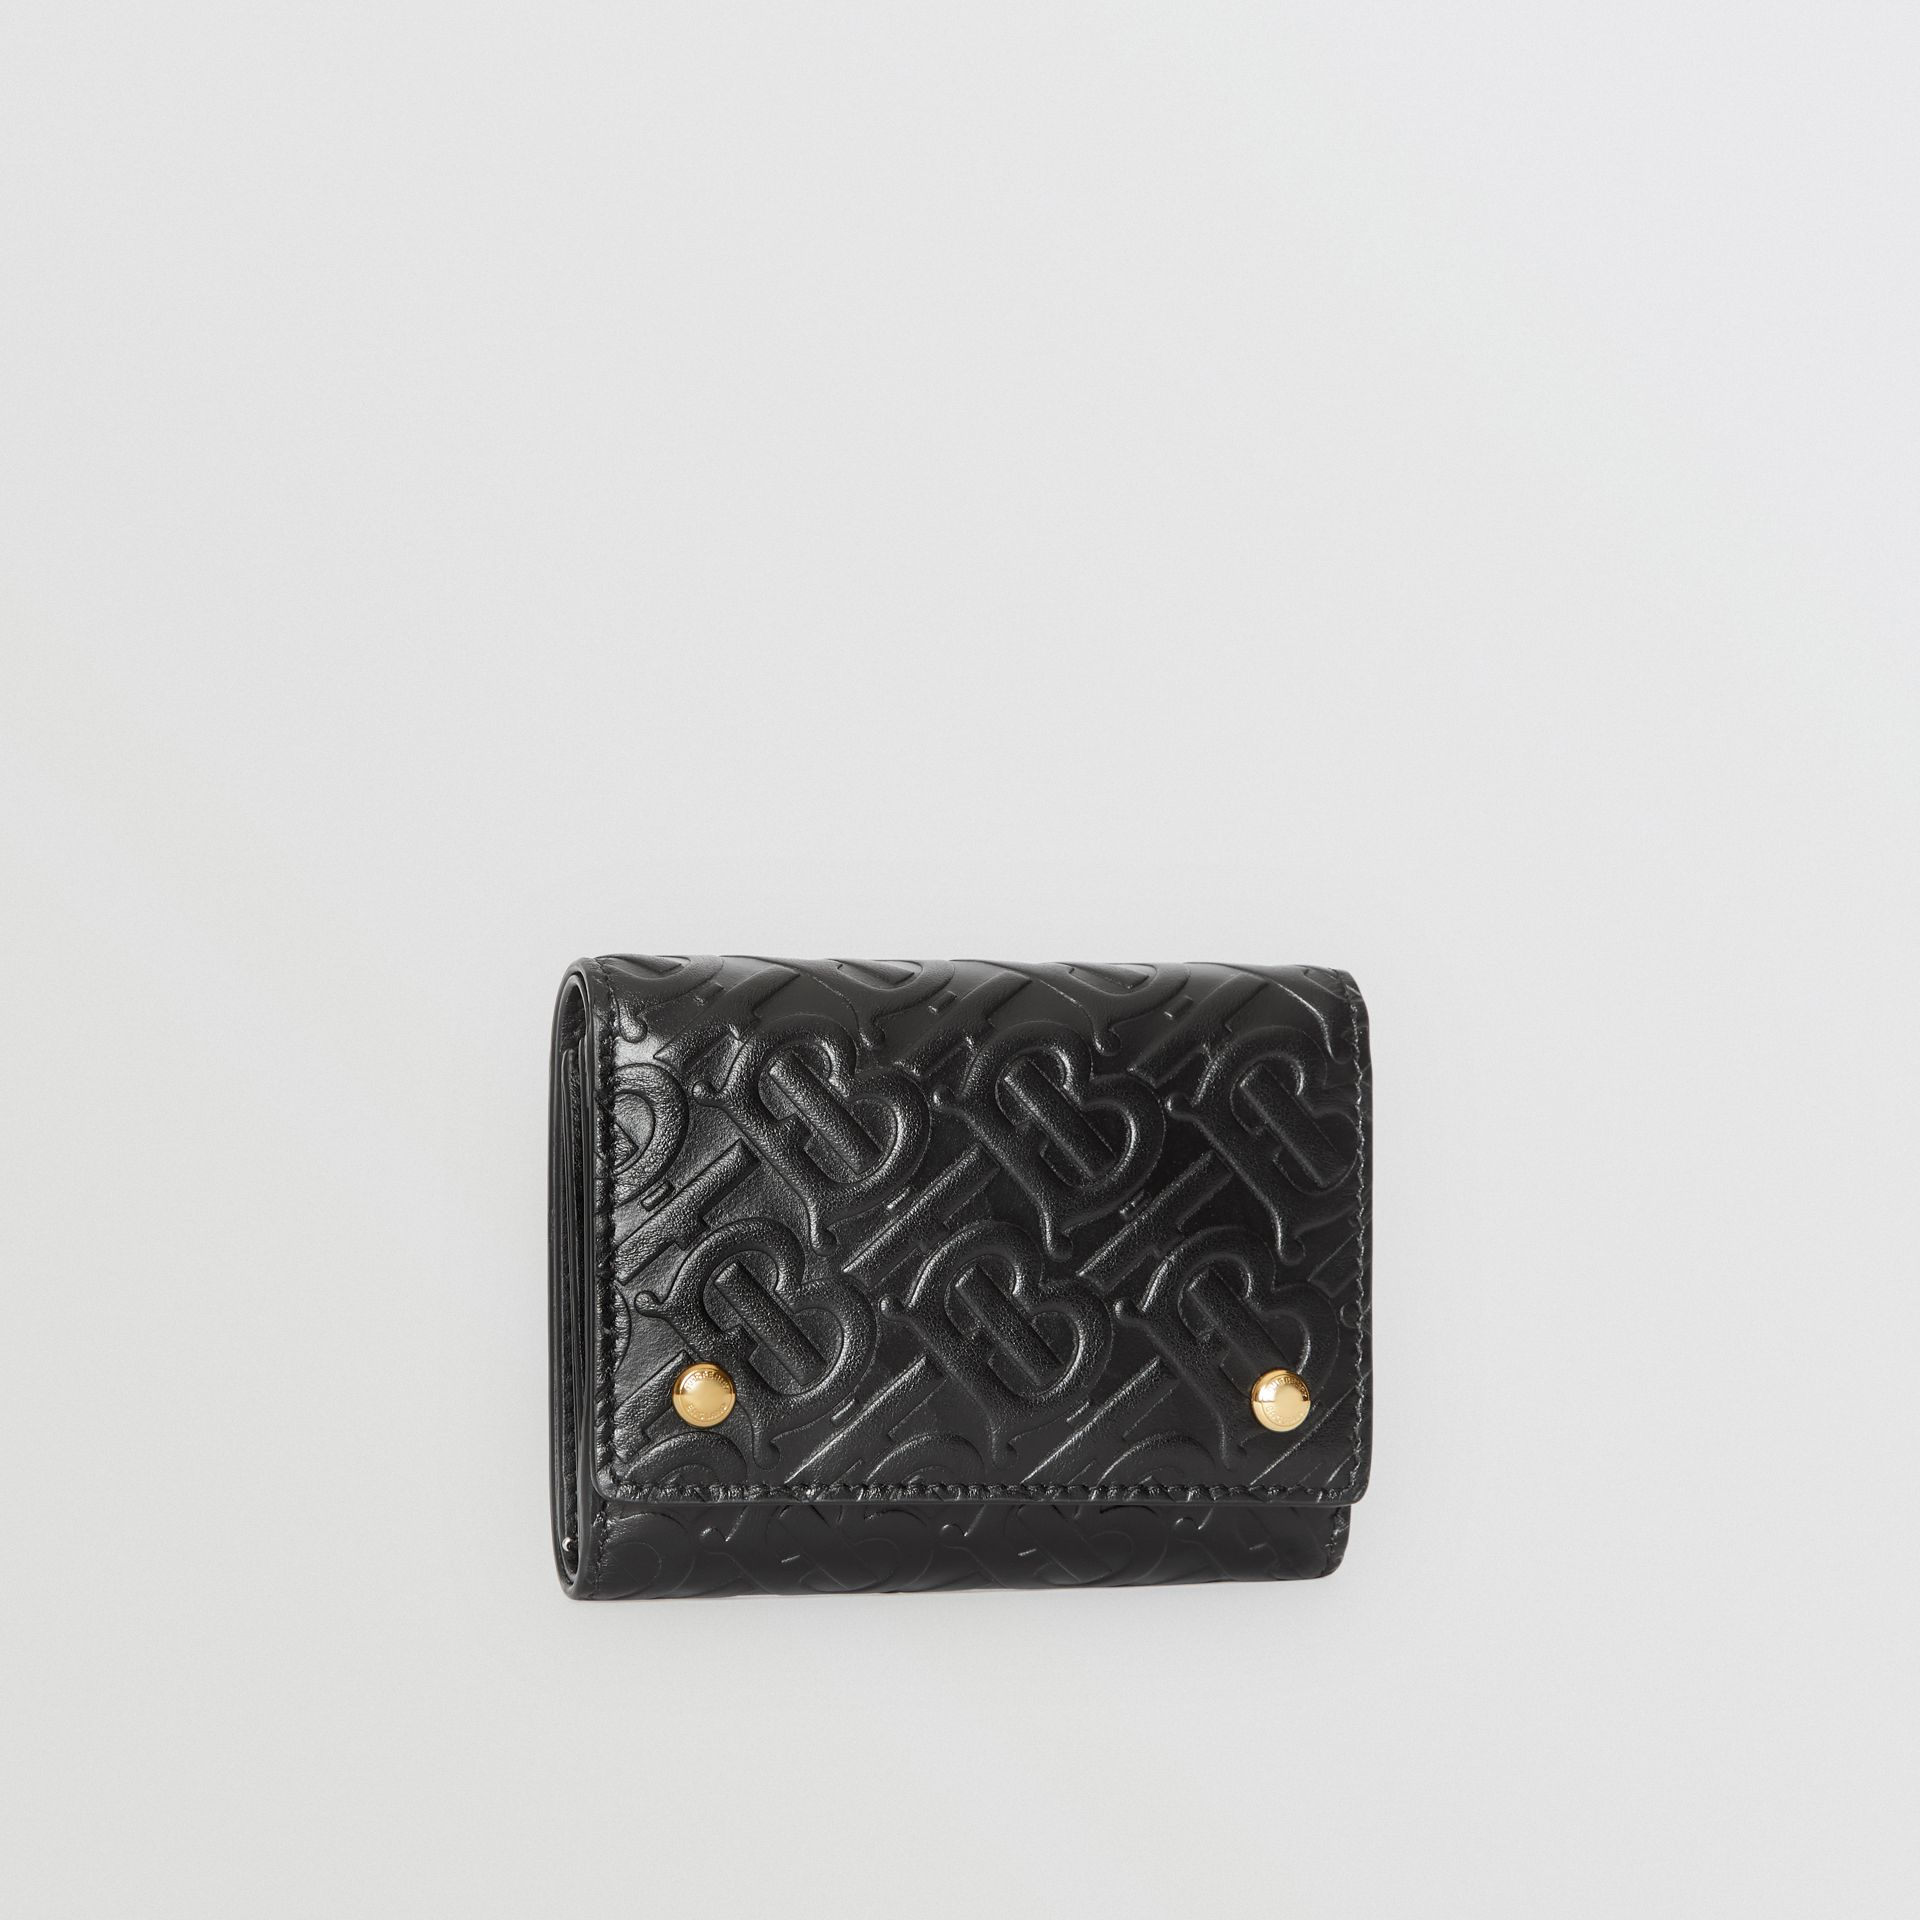 Small Monogram Leather Folding Wallet in Black - Women | Burberry - gallery image 4